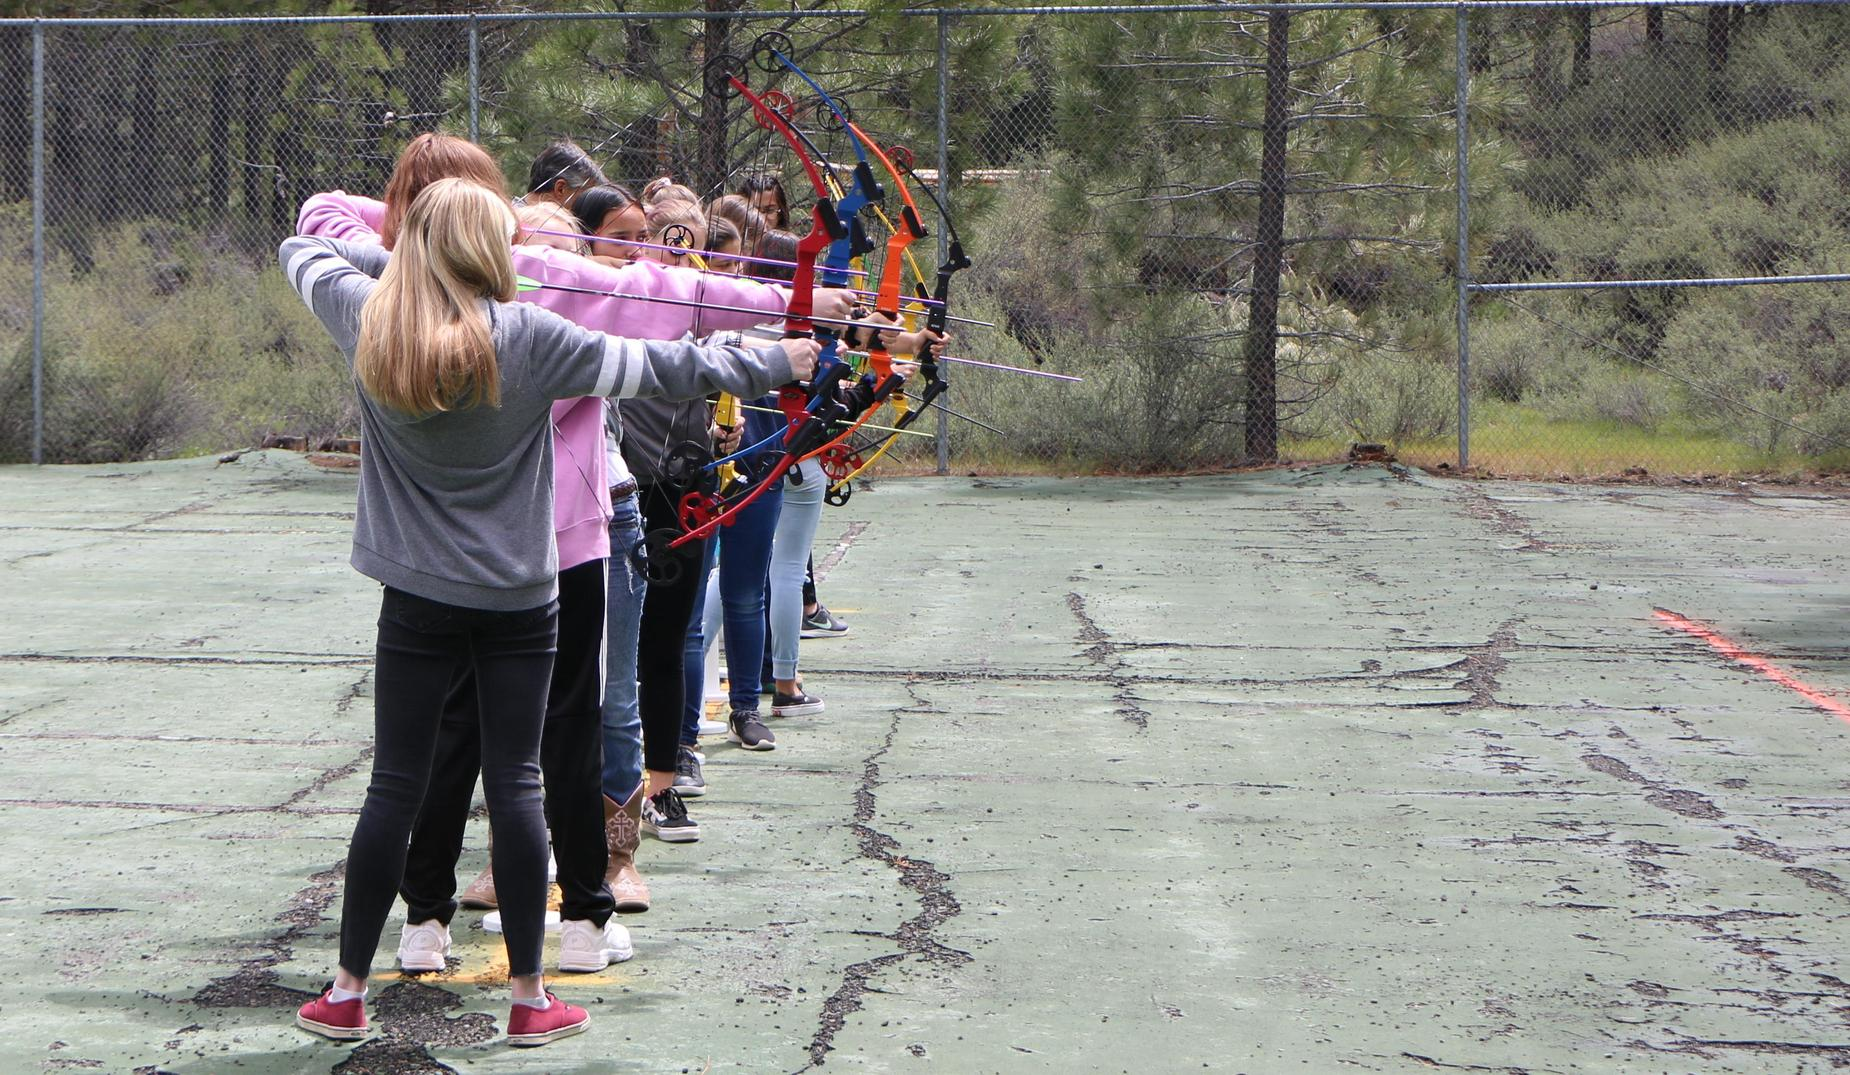 Portola High School Students practice archery